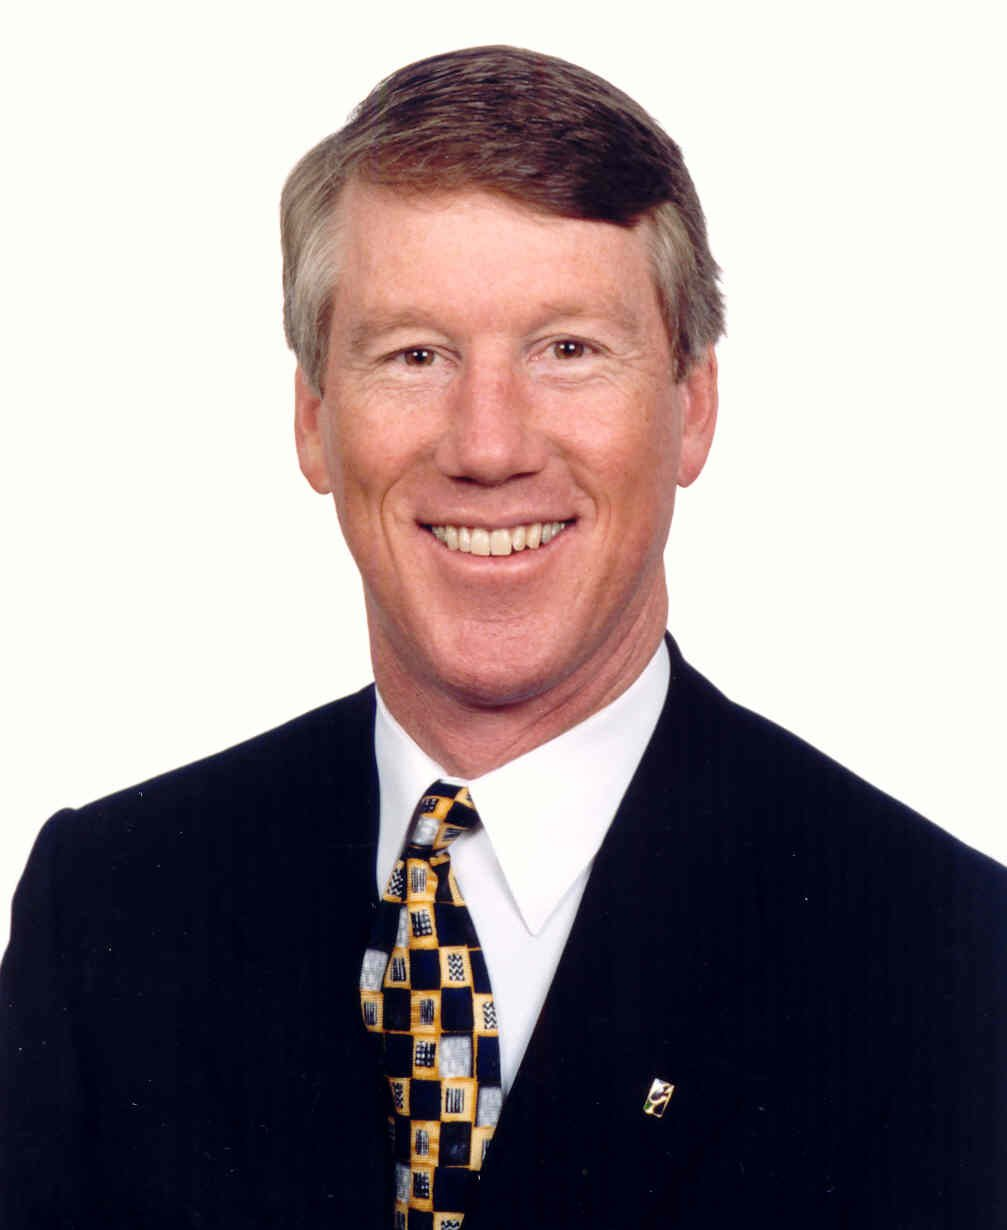 Colorado Realtor Larry Kendall